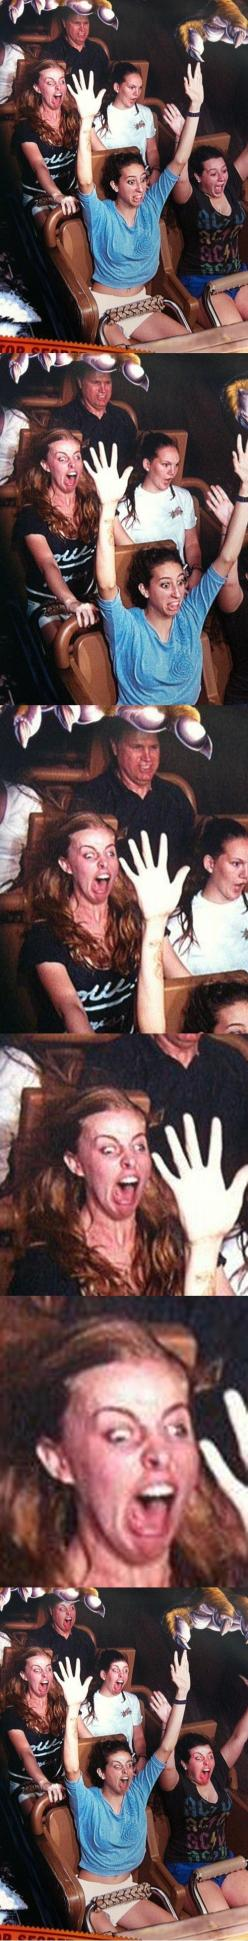 For some reason, we CANNOT stop laughing!: Giggle, Rollercoaster, Cant, Face Swaps, Funny Stuff, Roller Coasters, Faceswap, So Funny